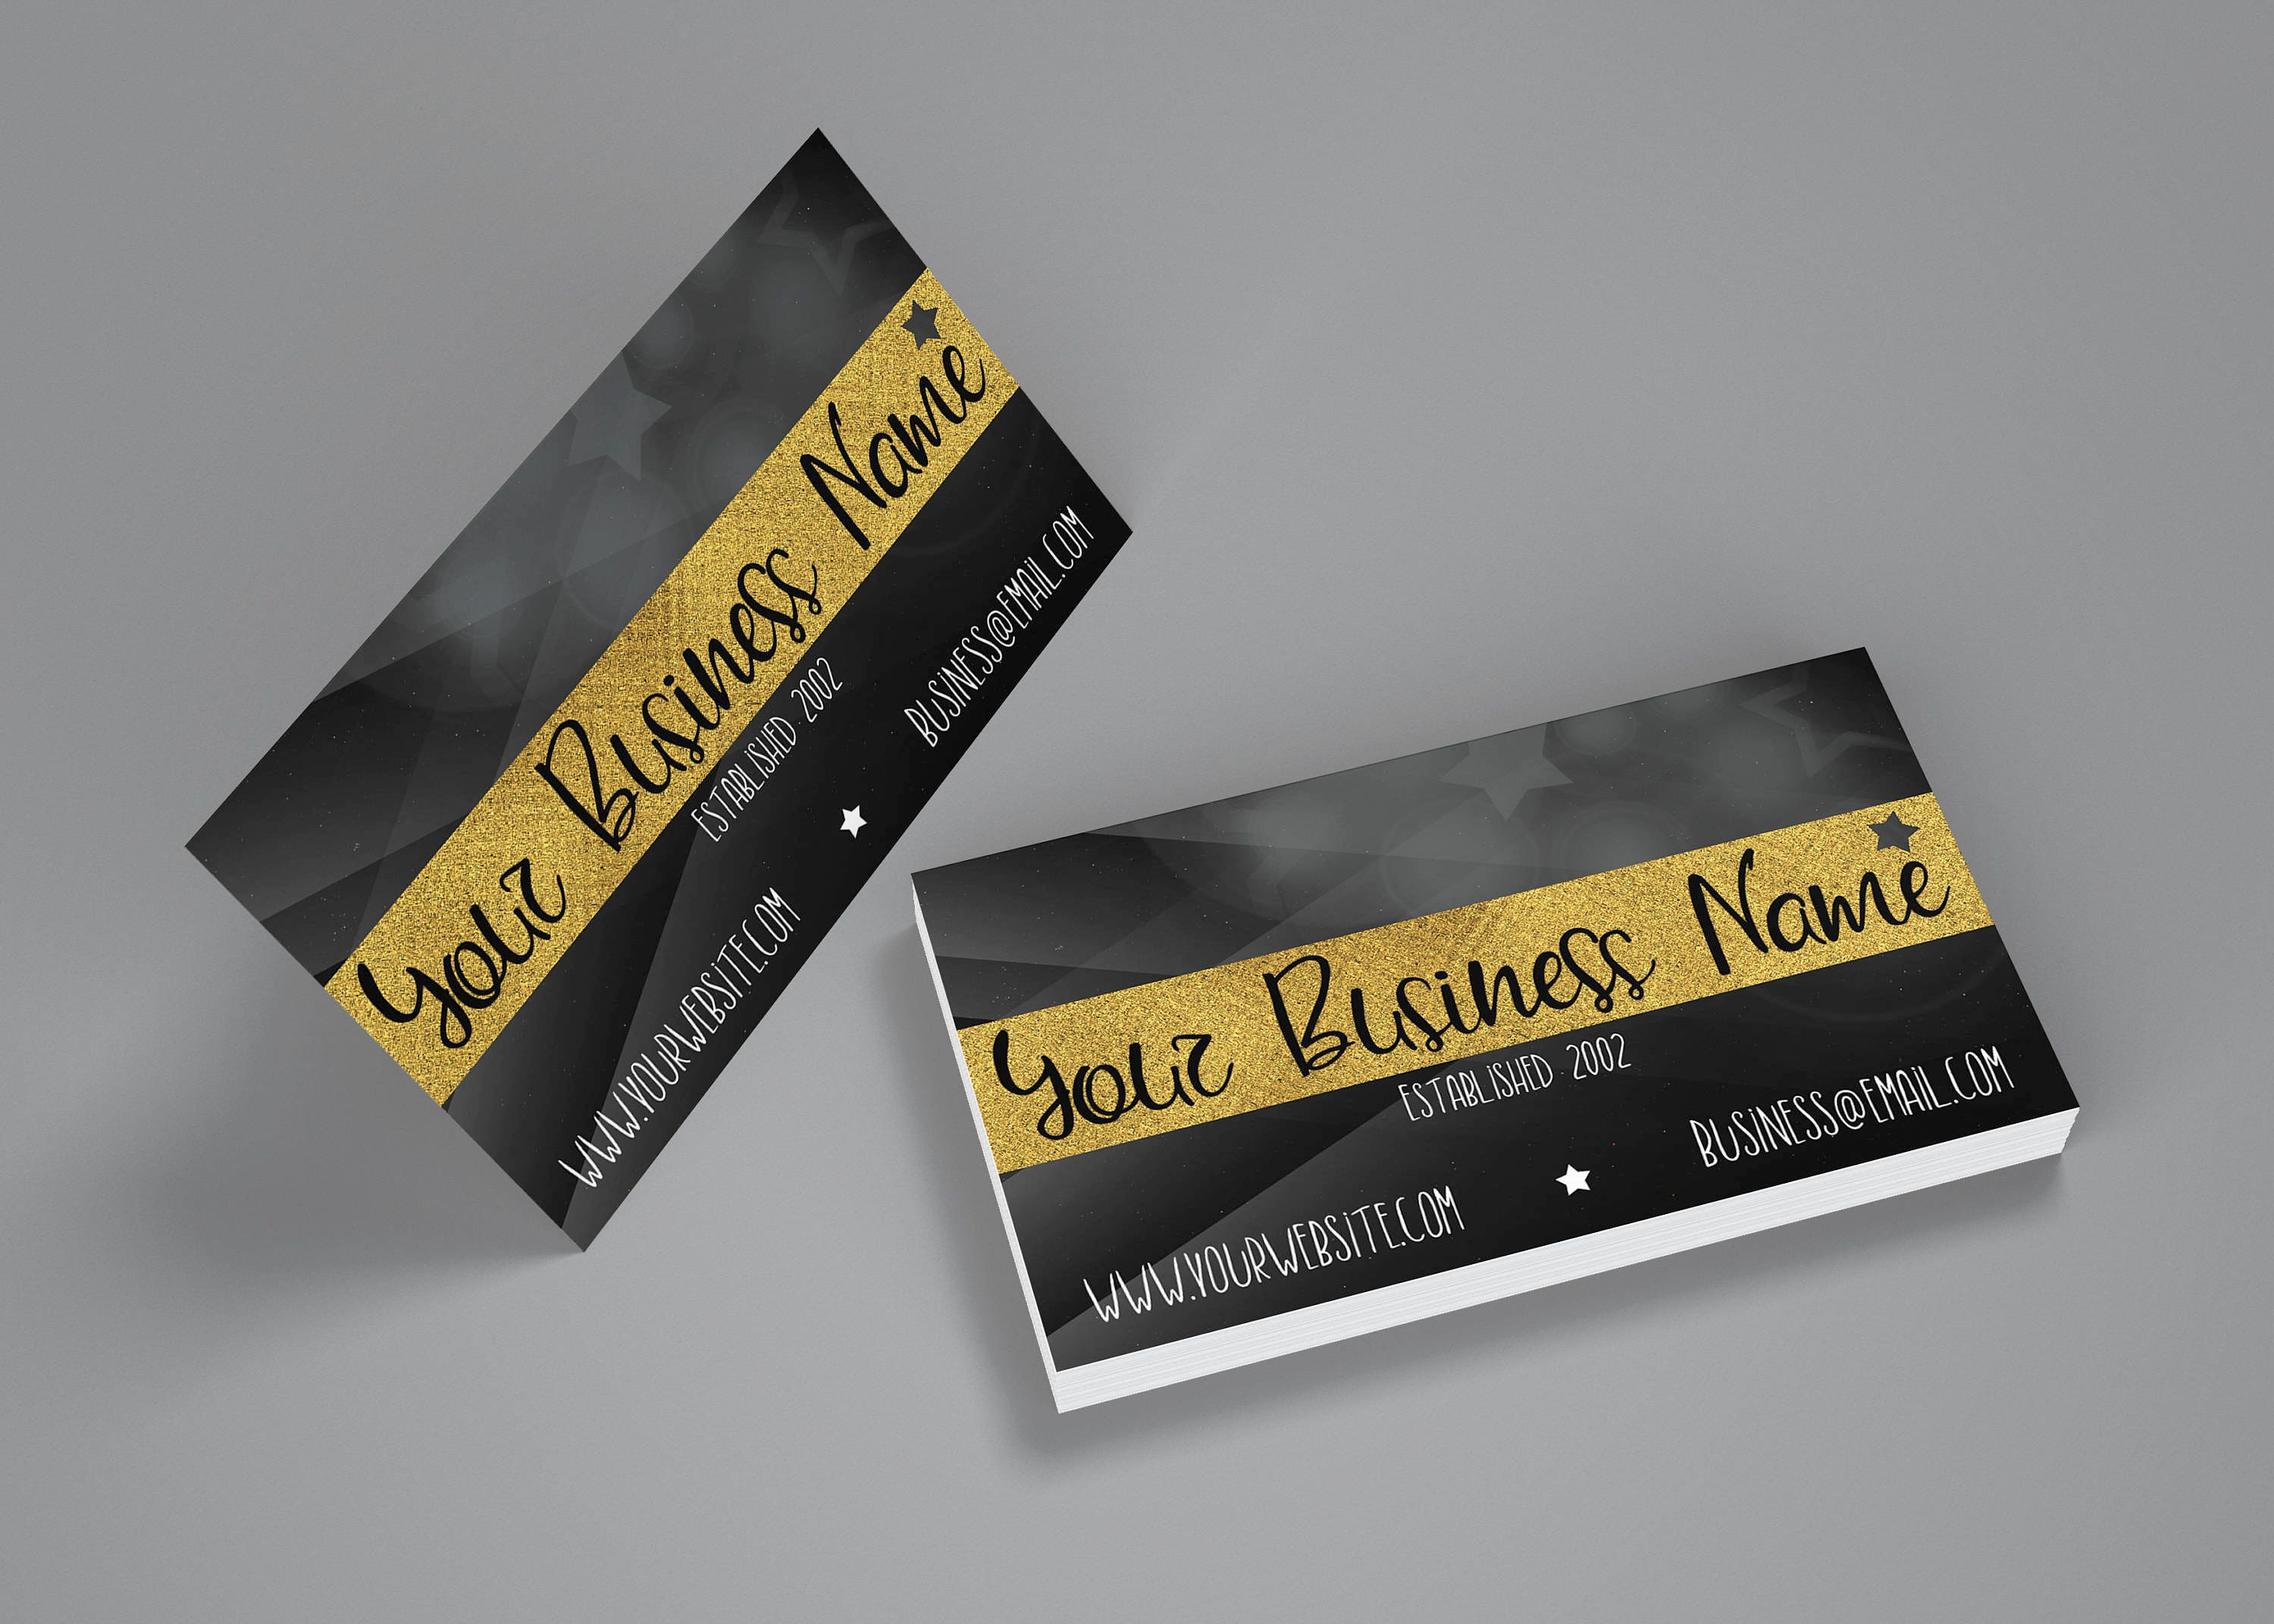 Star Business Cards